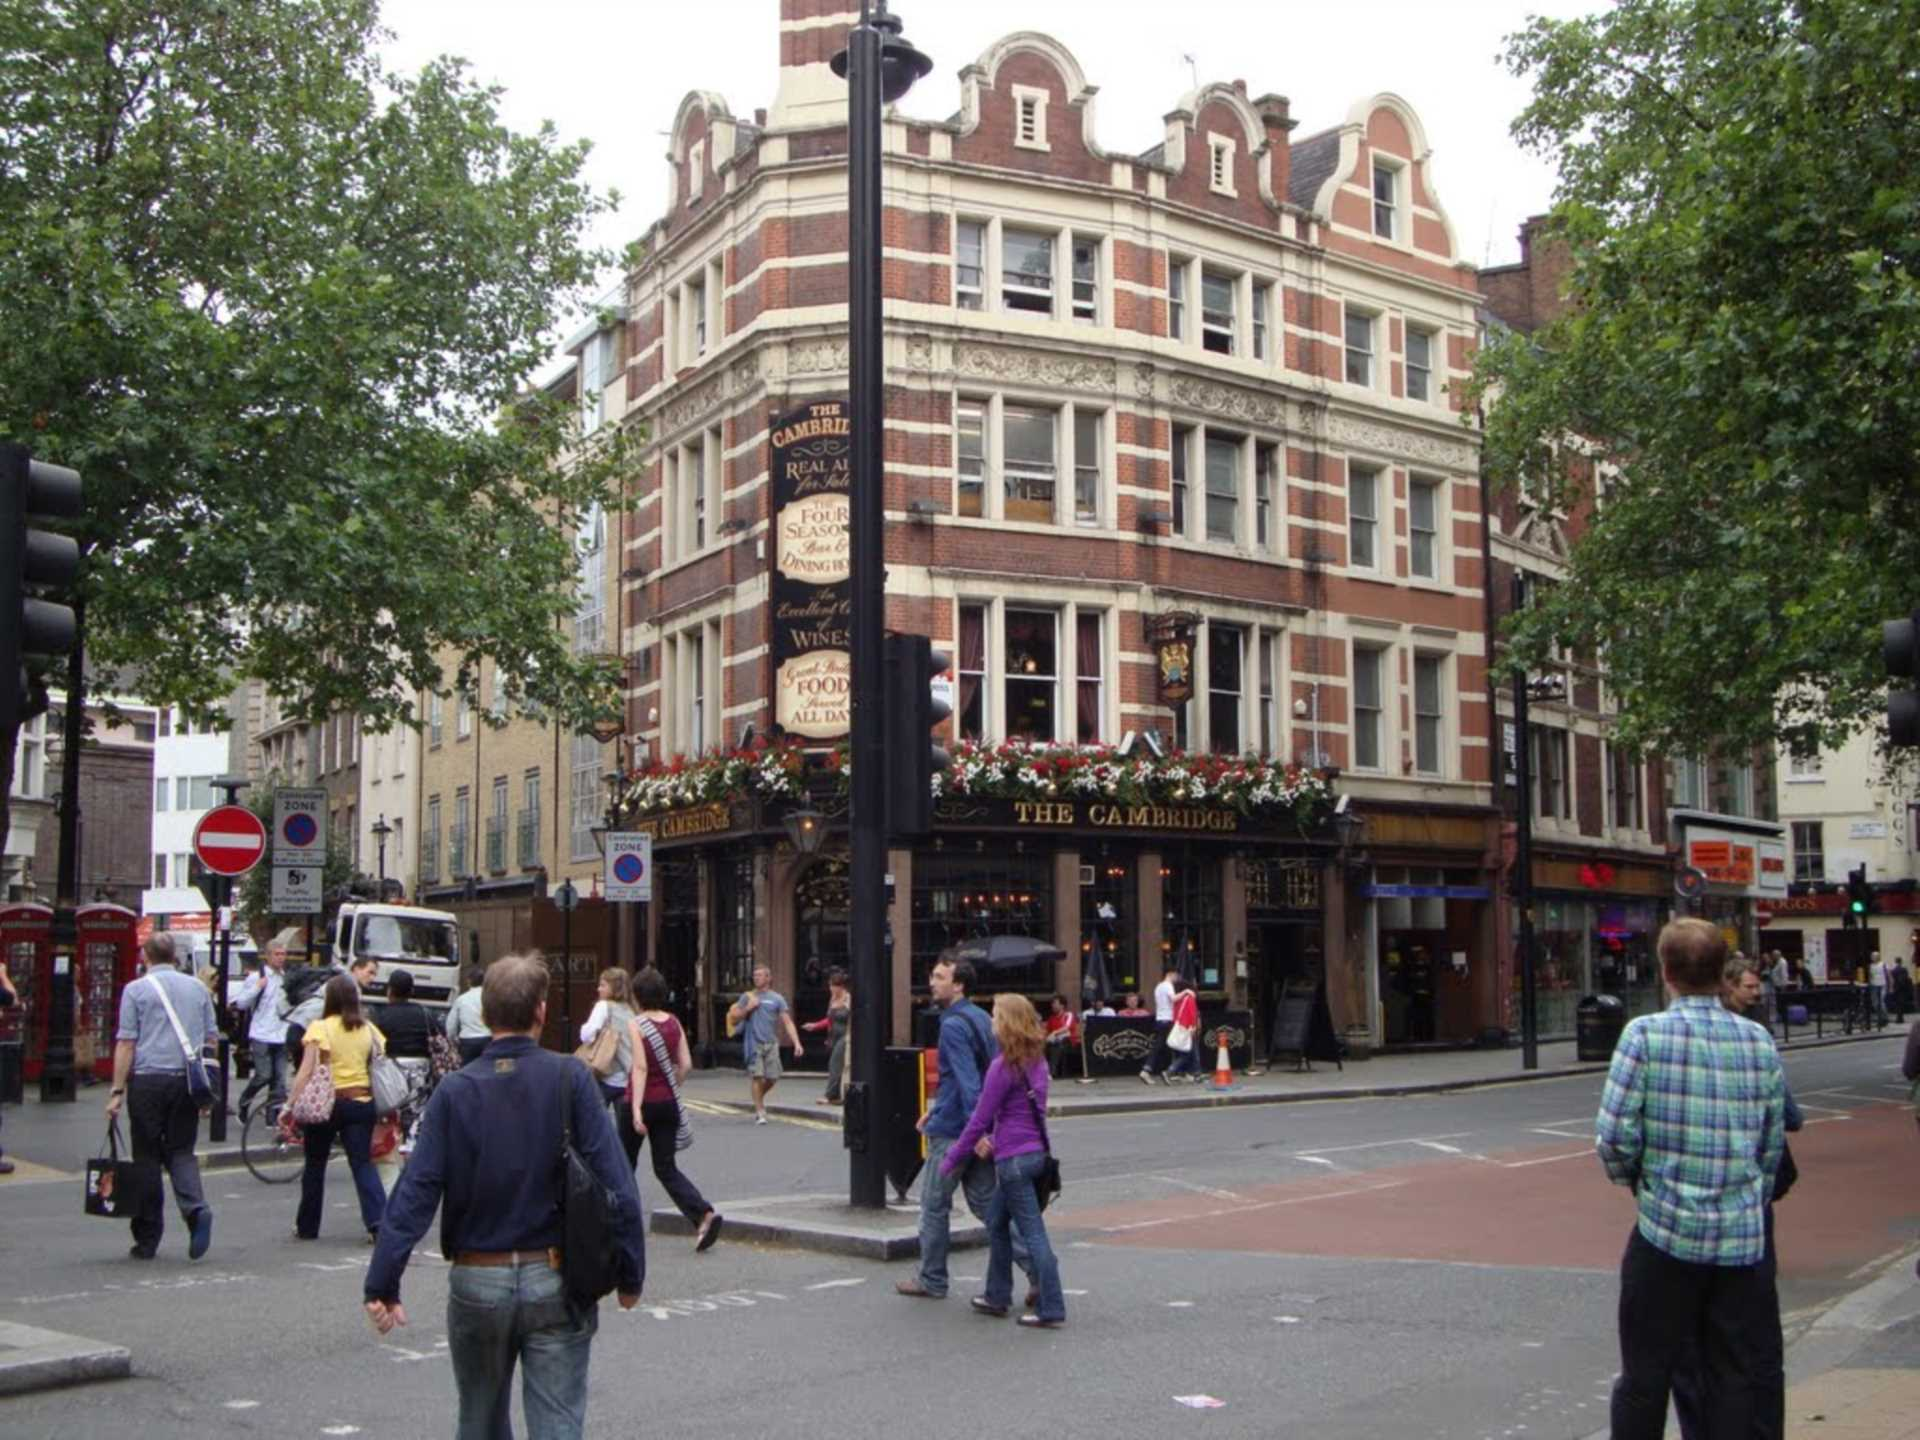 Retail Property (High Street) for rent in London. From Next Property (London)